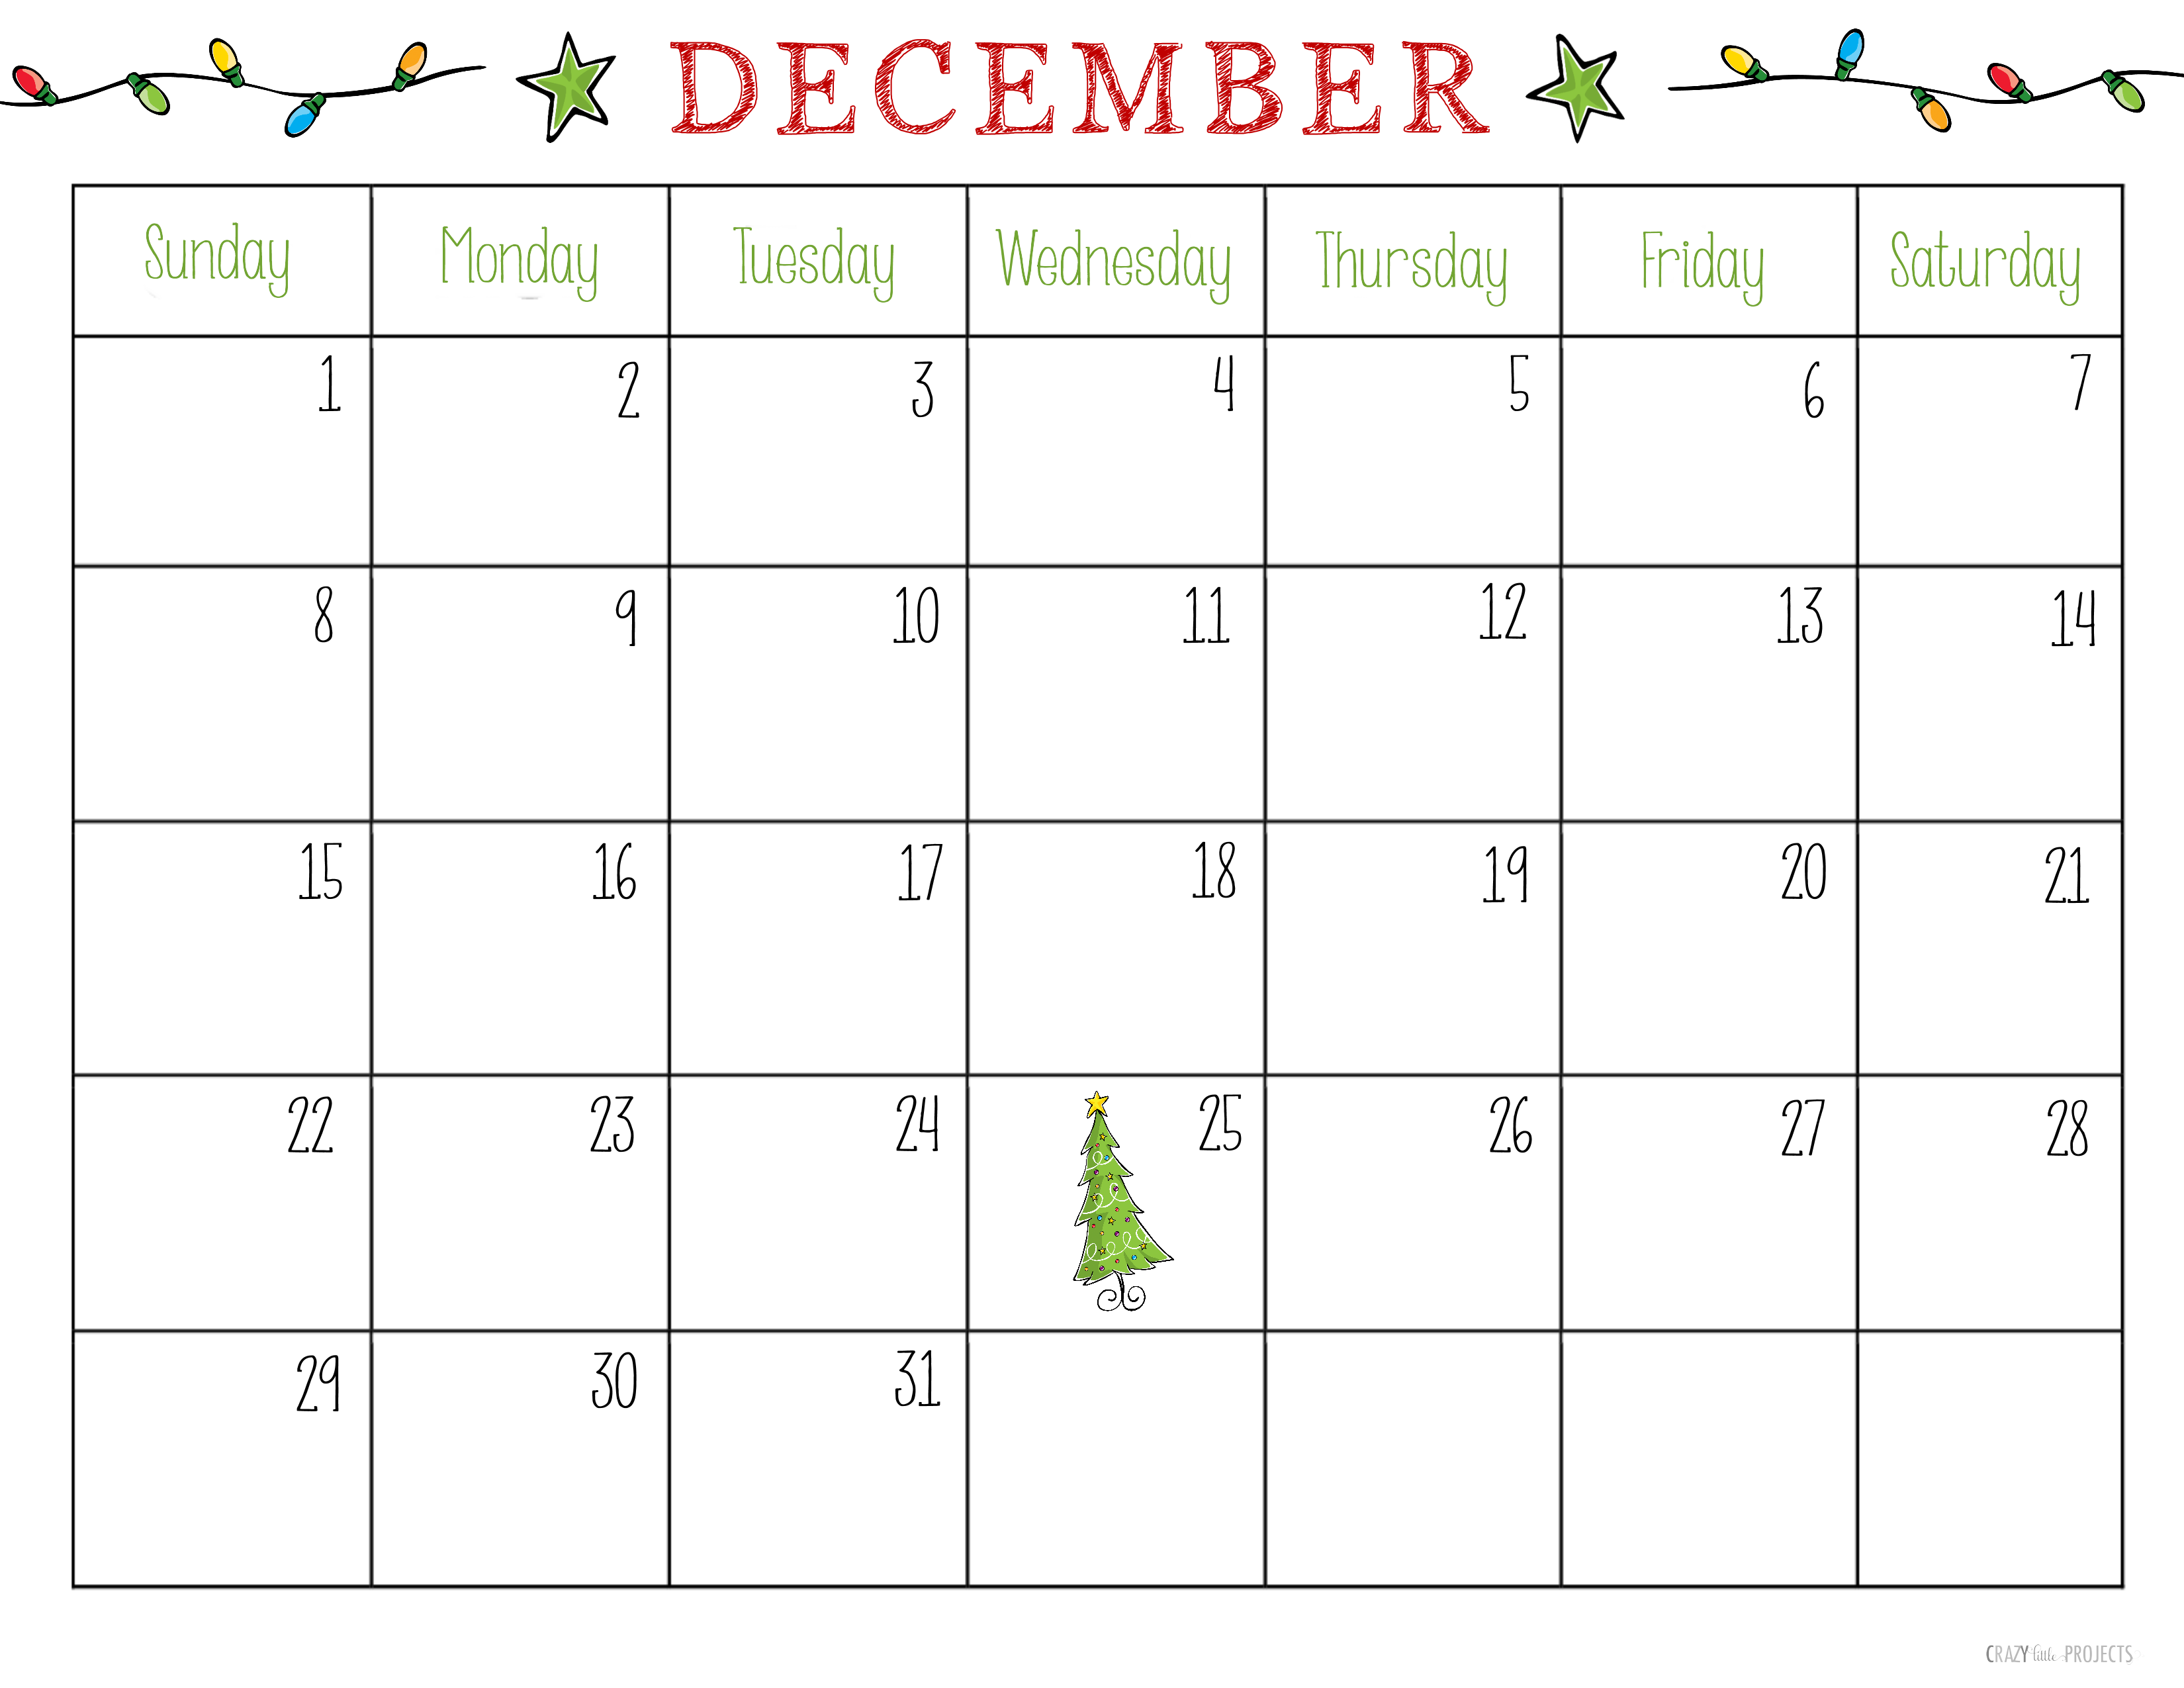 Cute December 2013 Calendar With Holidays Images & Pictures - Becuo